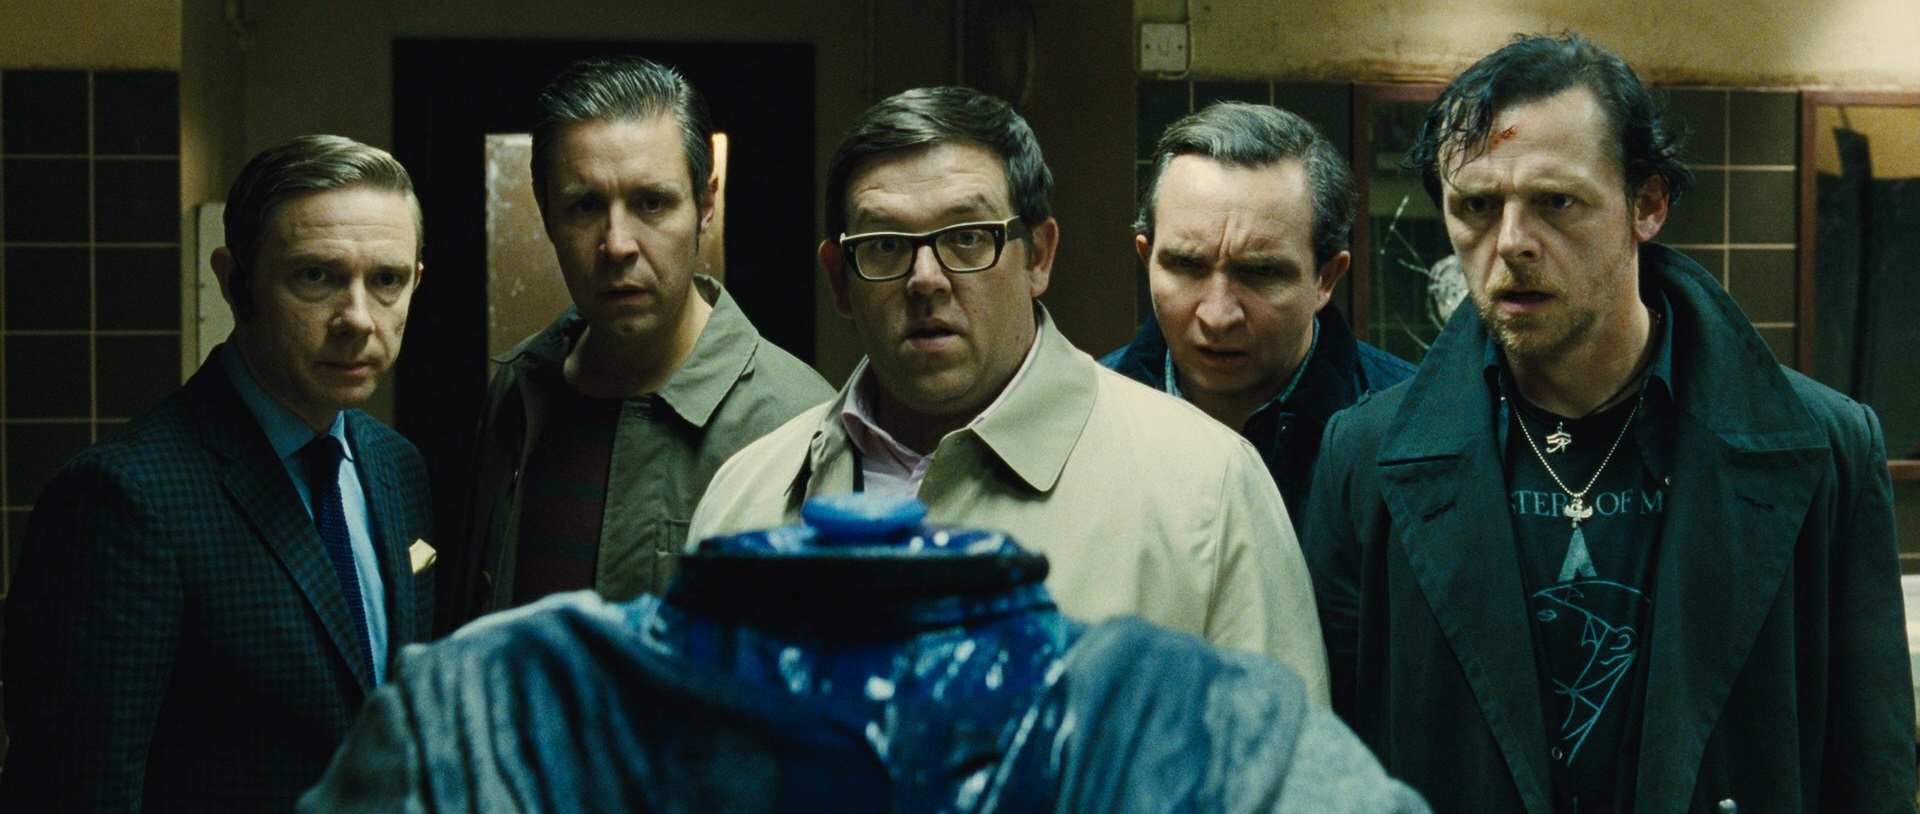 Martin Freeman, Paddy Considine, Nick Frost, Eddie Marsan and Simon Pegg deal with a decapitated android in The World's End (2013)